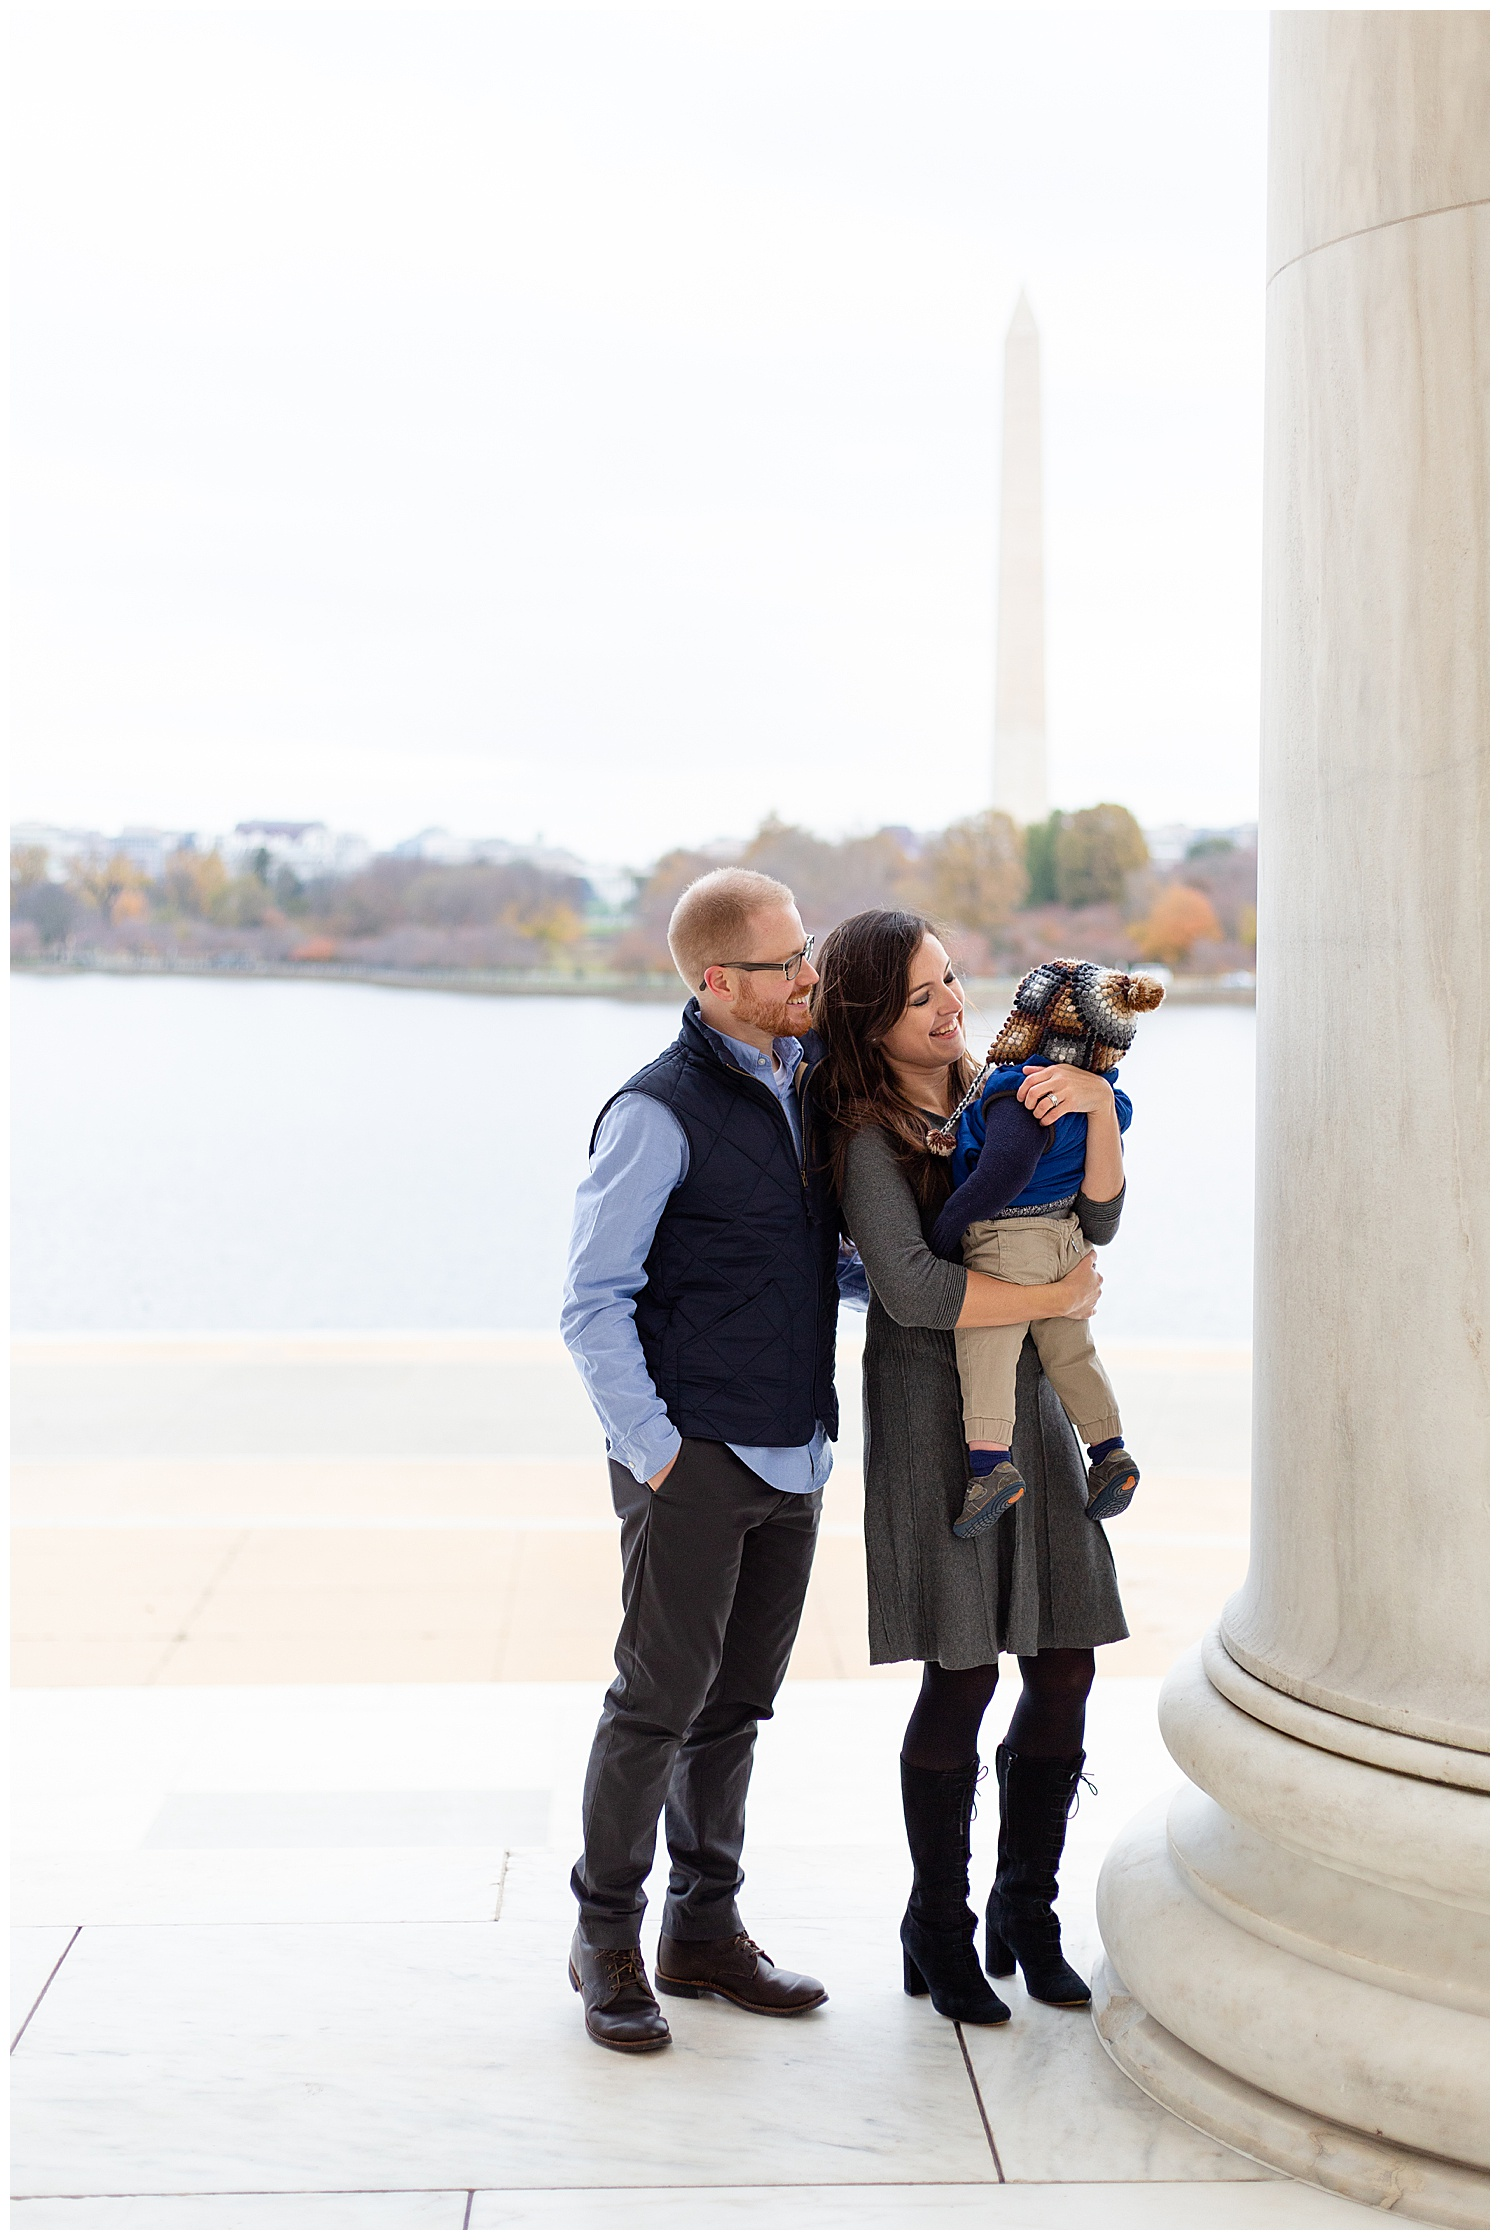 emily-belson-photography-jefferson-memorial-family-06.jpg